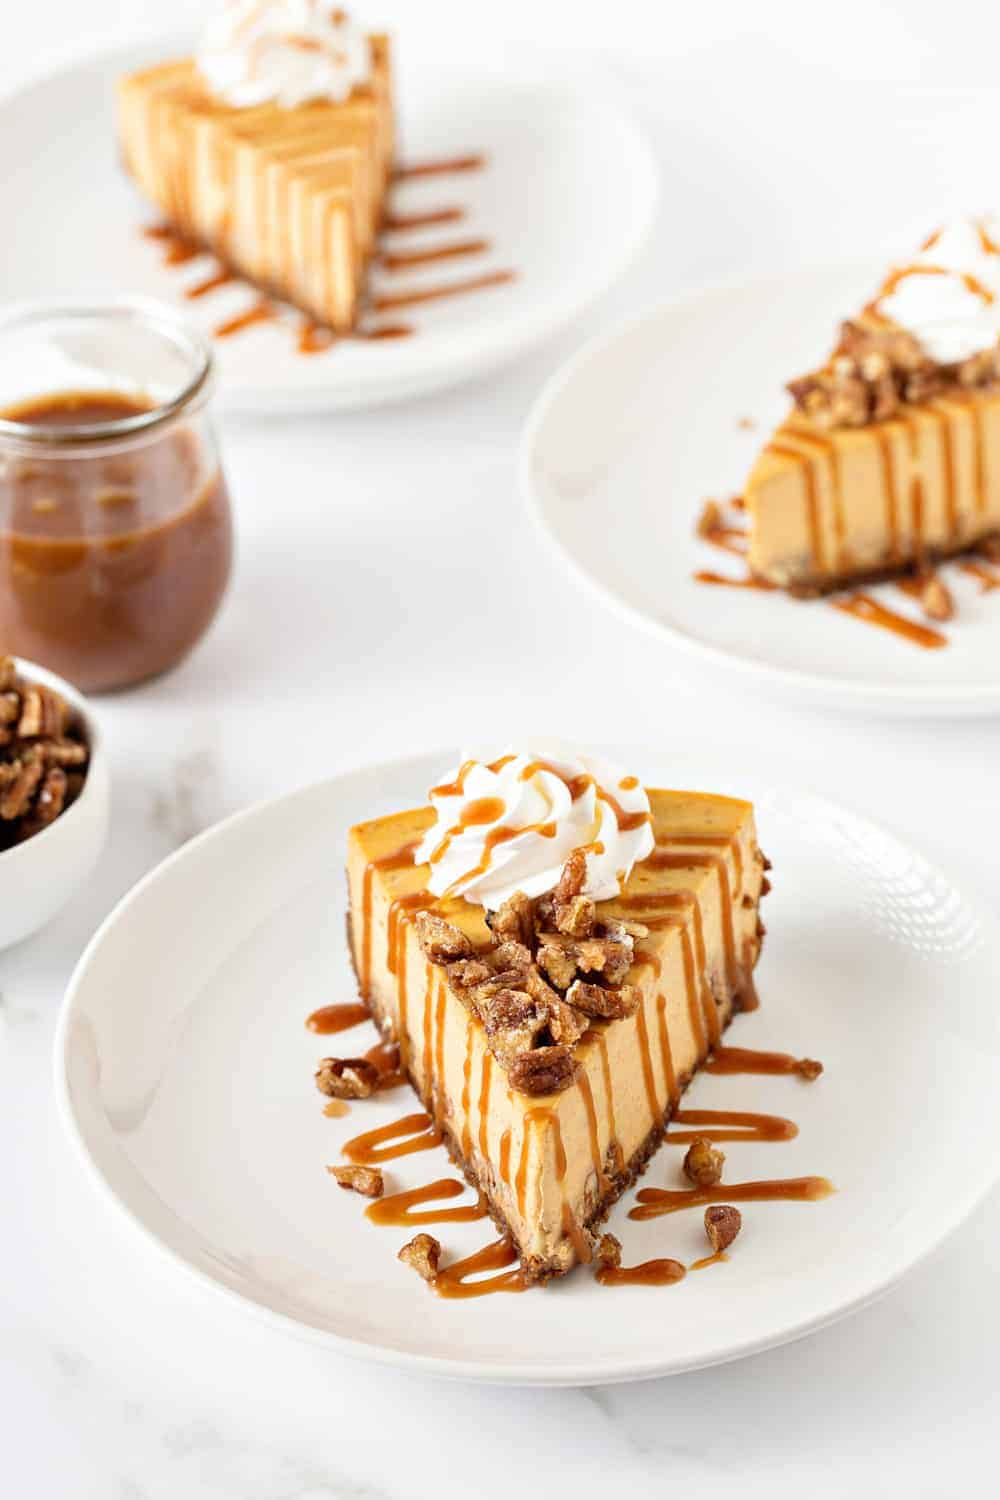 Pumpkin Praline Cheesecake combines sweet praline pecans with creamy pumpkin cheesecake, a gingersnap crust and salted caramel sauce.